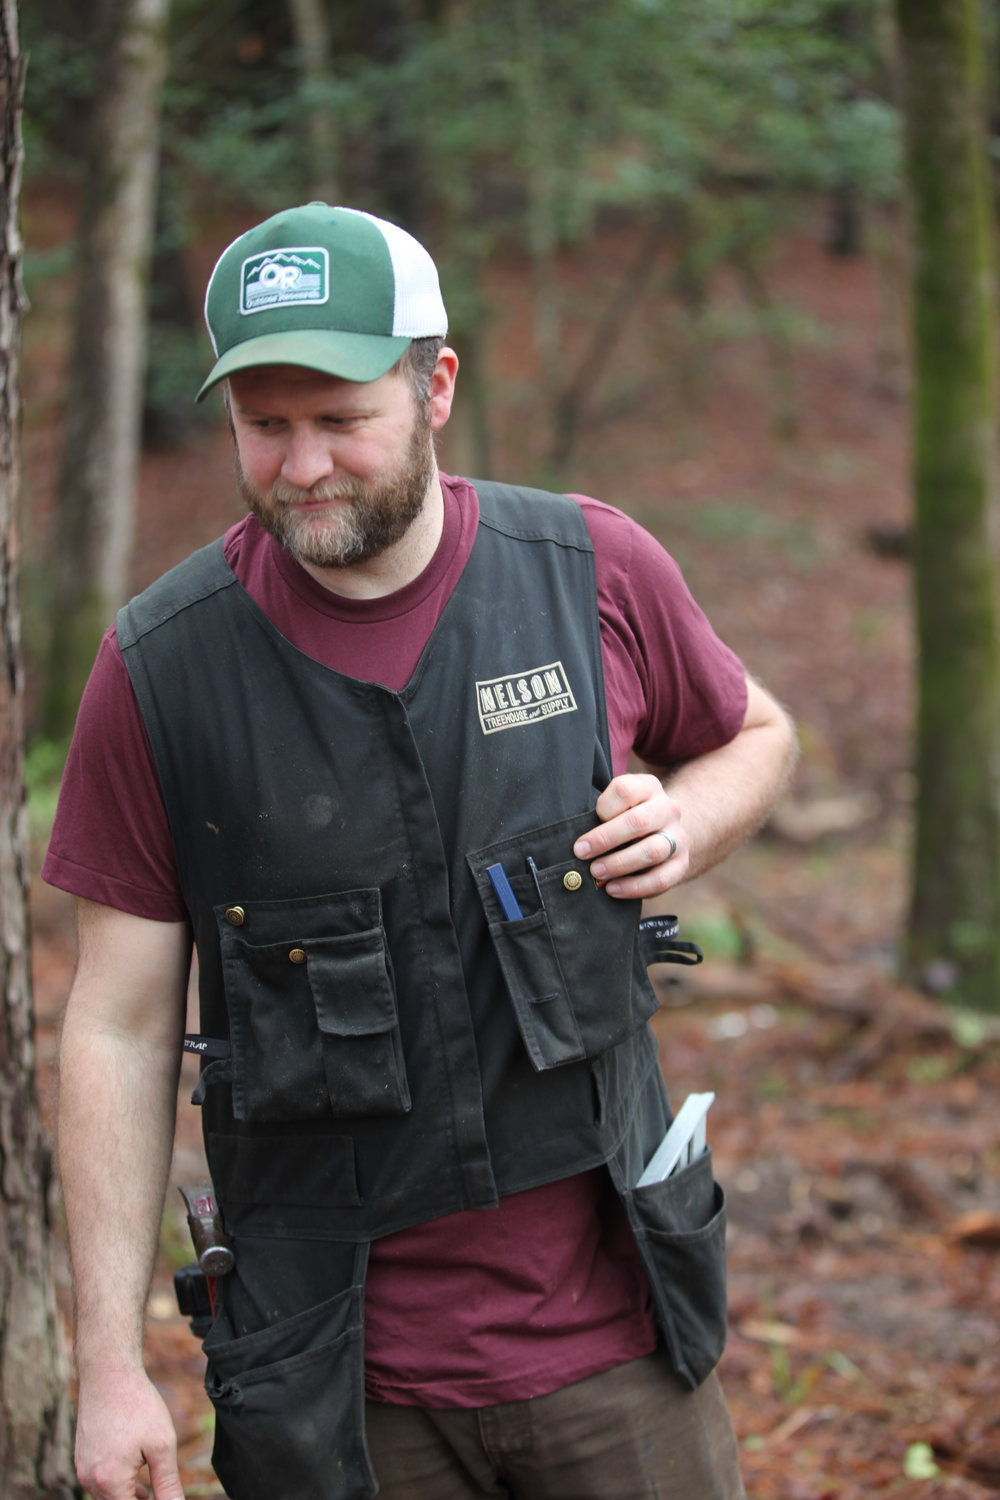 Daryl working the NT&S Blacklader Tool Vest